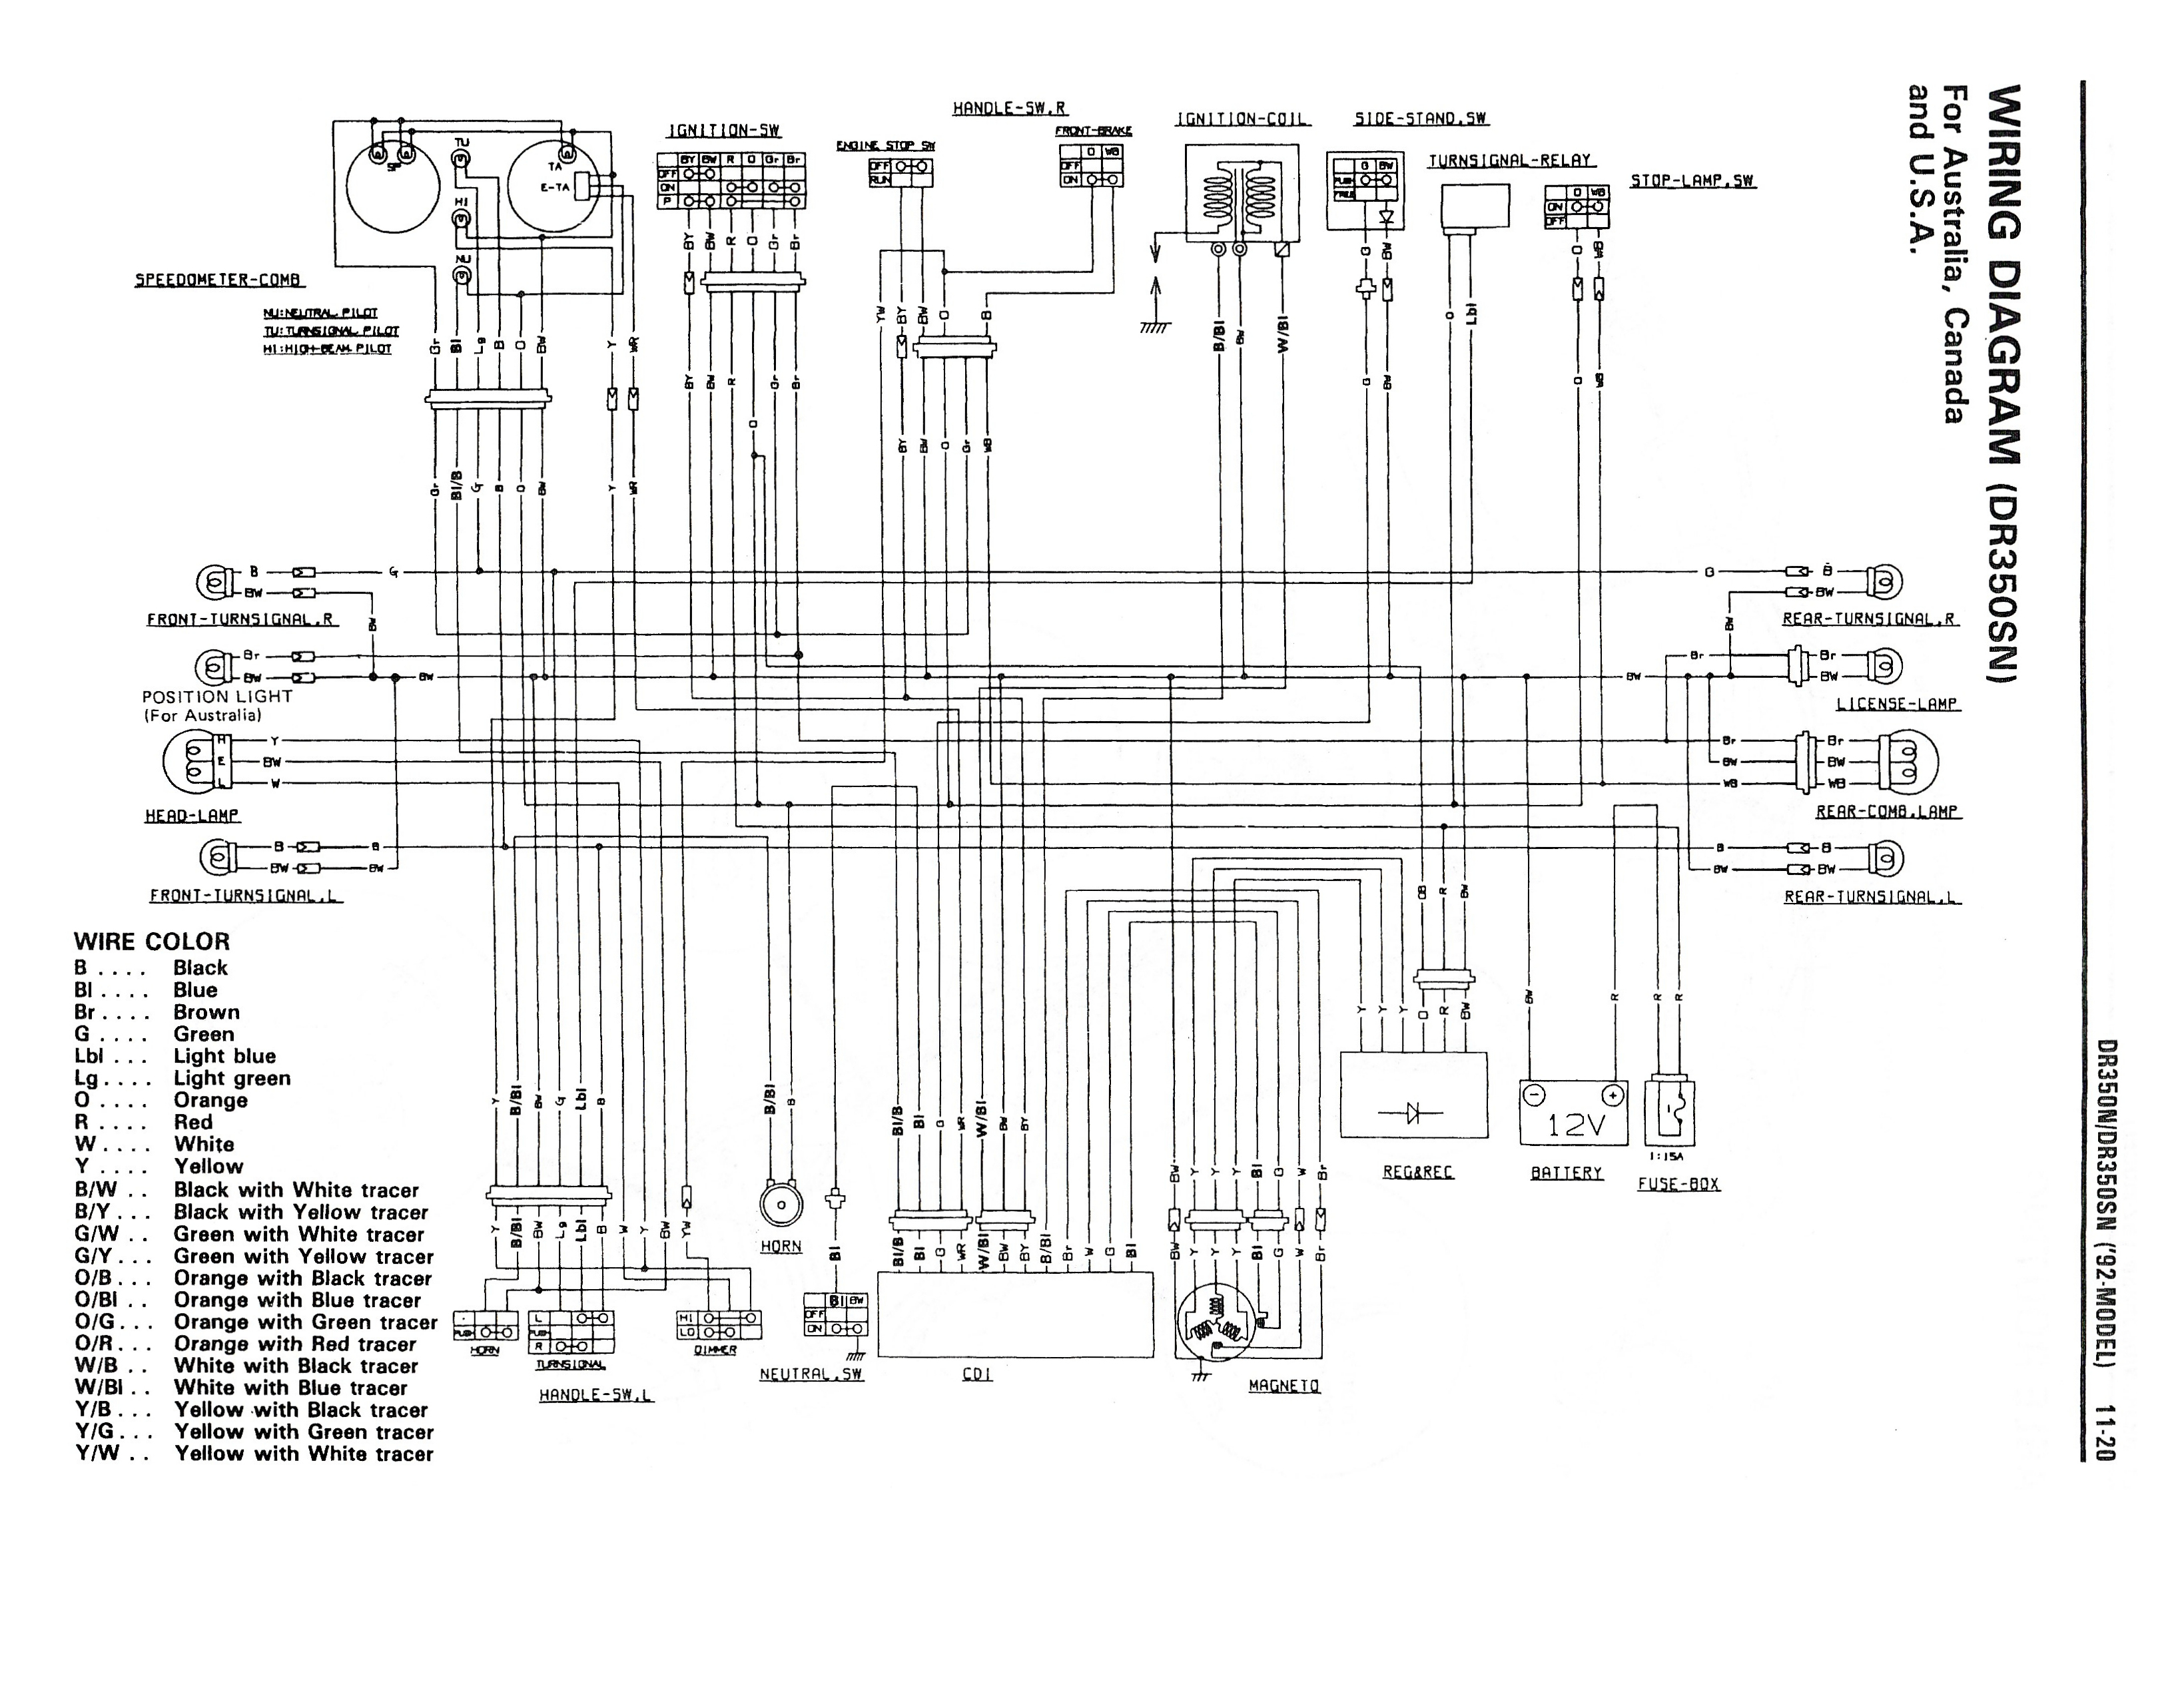 Wiring diagram for the DR350 S (1992 and later models - Australia, Canada, USA)